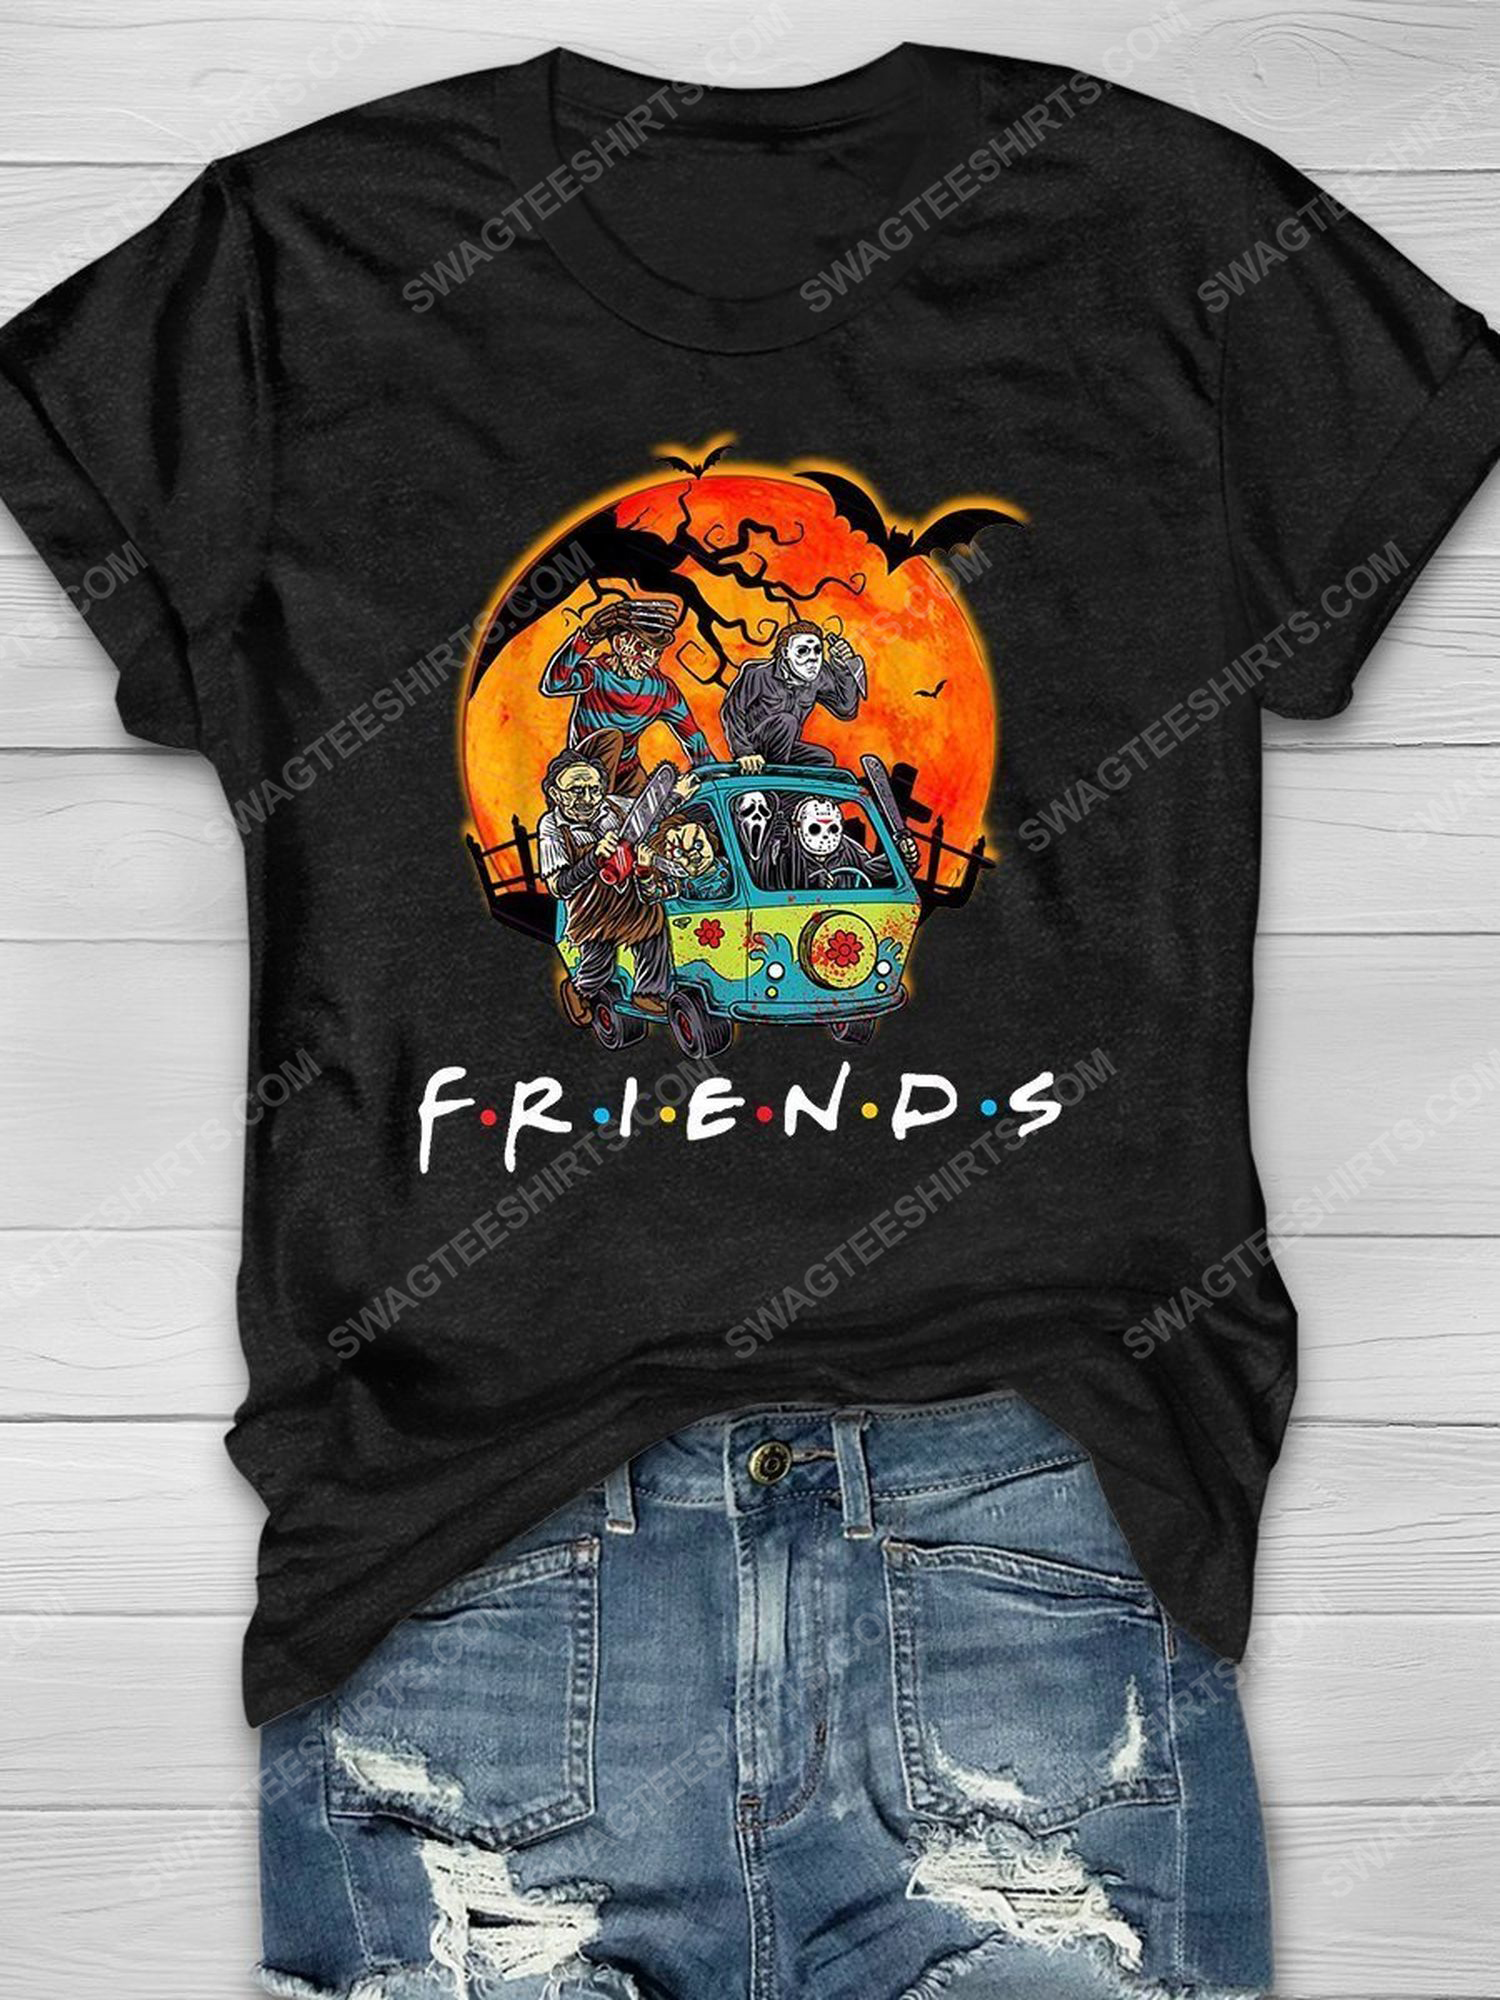 Halloween night with serial killers friends tv show shirt 1 - Copy (3)